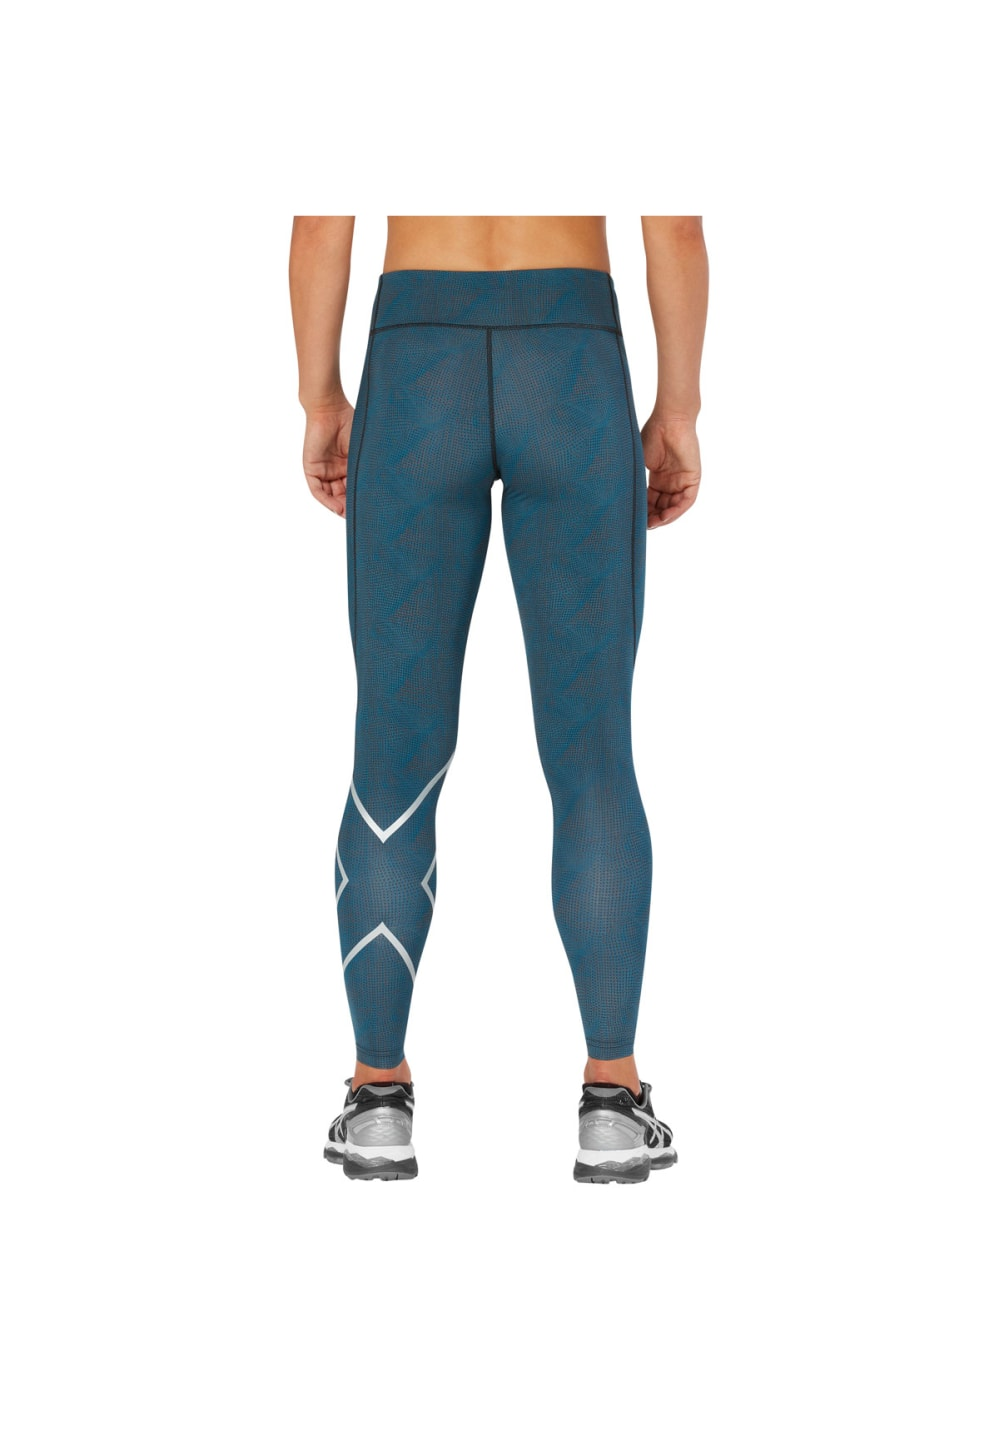 a9da529908 Next. -40%. This product is currently out of stock. 2XU. Mid-Rise  Compression Tights with Storage - Running trousers for Women